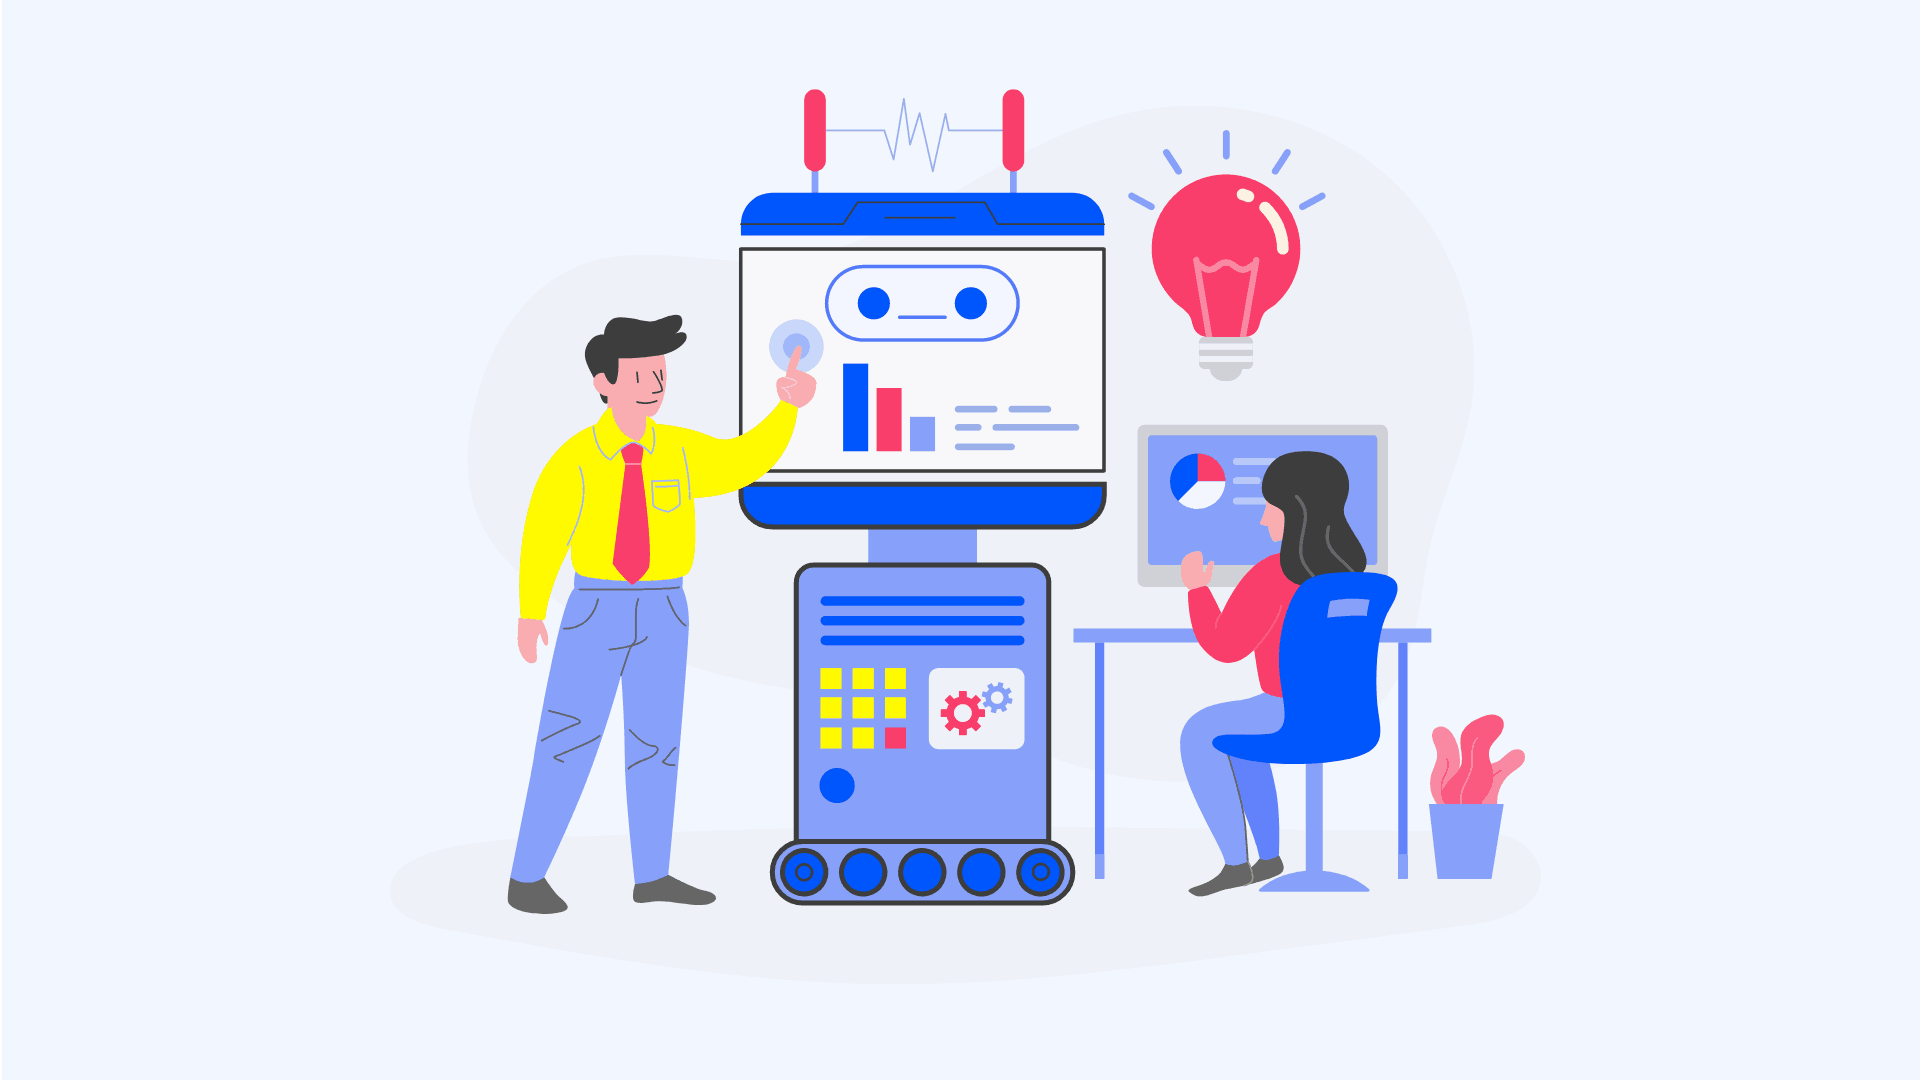 Learn to build predictive model in machine learning